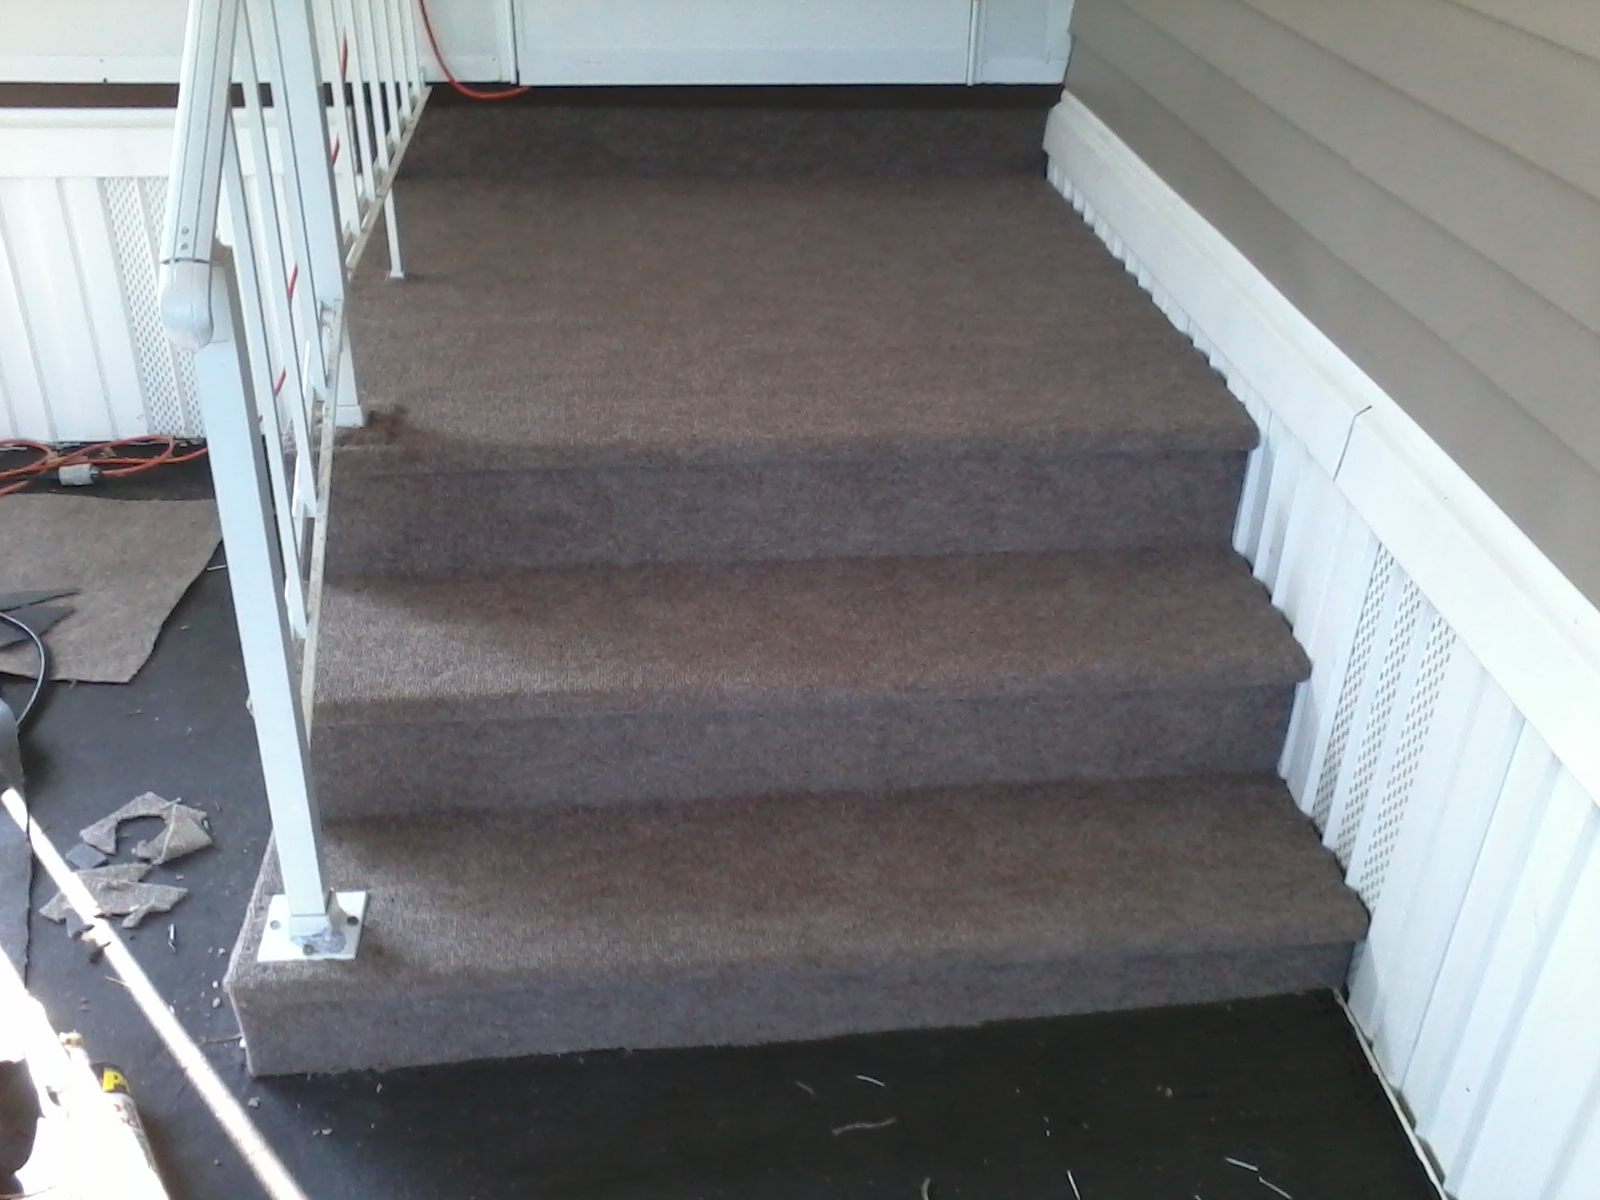 Outdoor carpet for concrete srs carpet vidalondon for Cleaning concrete steps